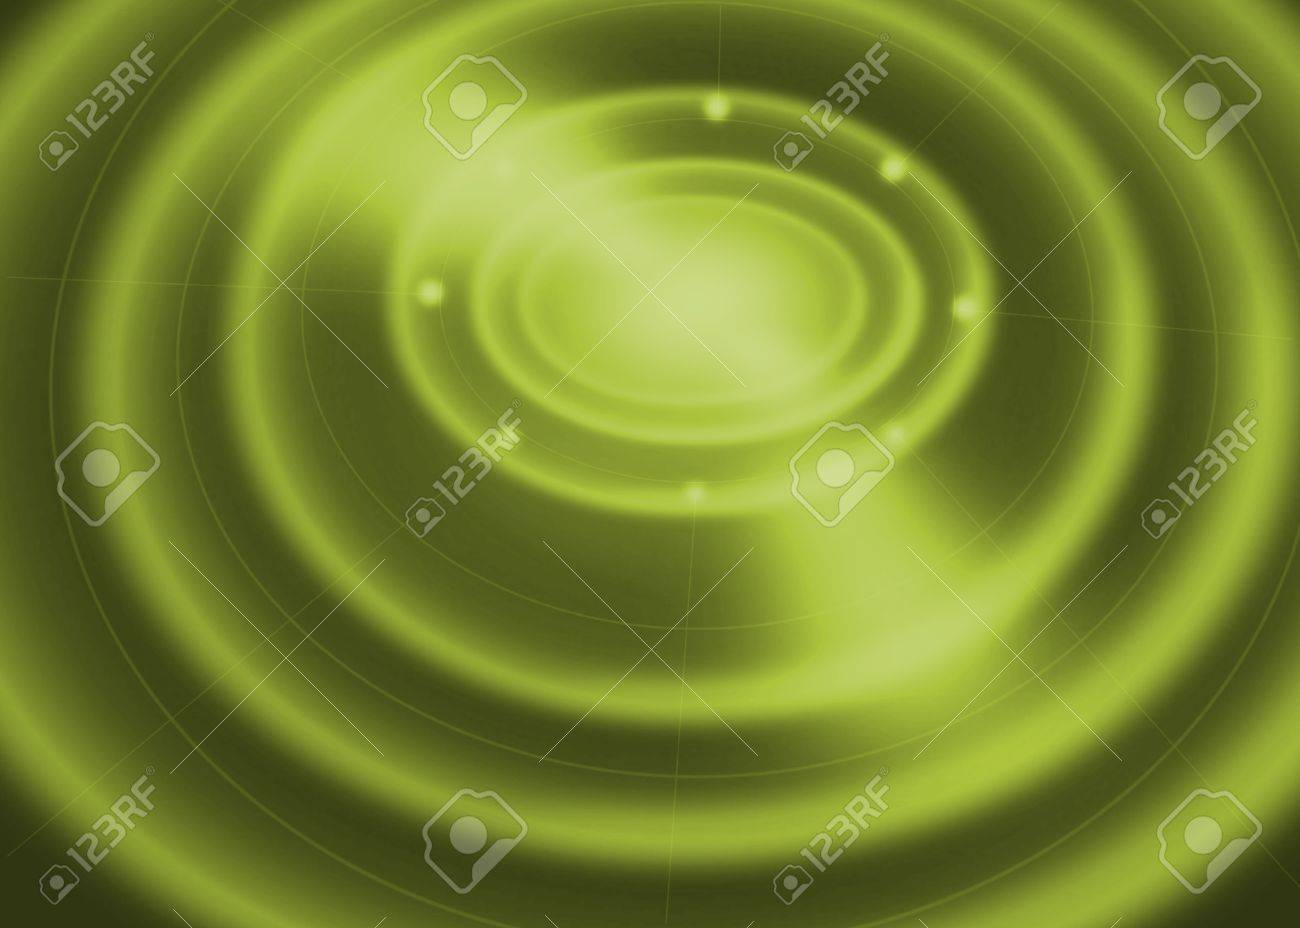 abstract wave light, green background Stock Photo - 19140628